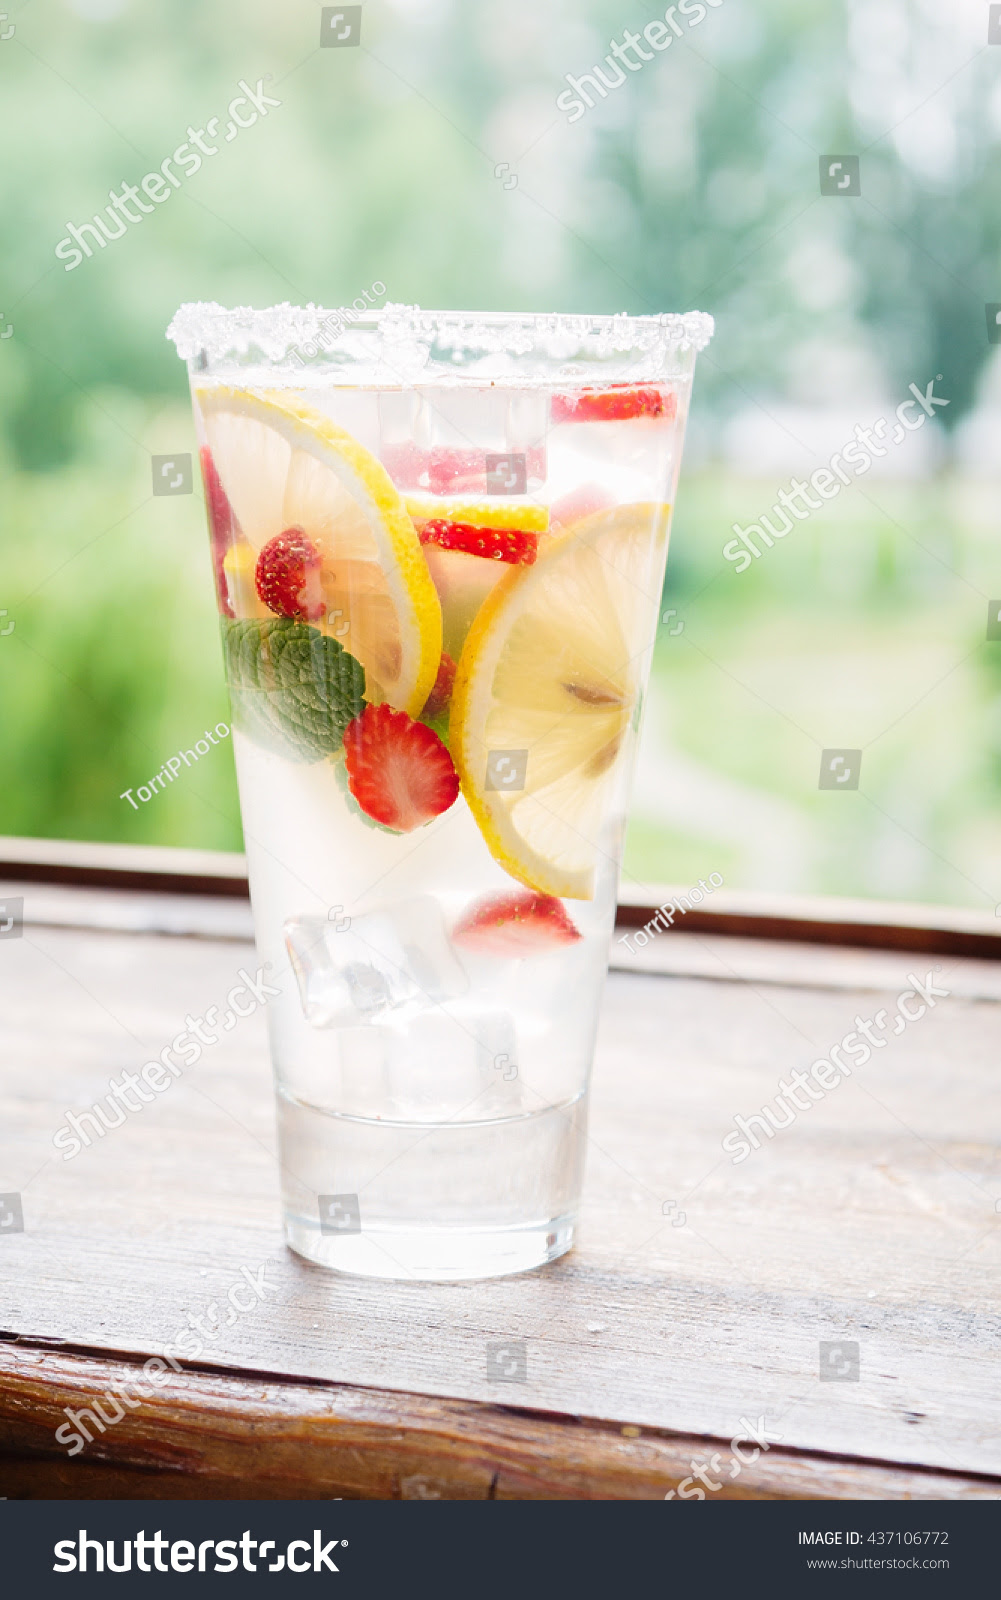 TorriPhoto,  background, berry, beverage, citric, citrus, cocktail, cold, cool, detox, drink, focus, food, fresh, fruit, glass, green, healthy, homemade, ice, ingredient, juice, juicy, leaf, lemon, lemonade, light, liquid, mint, natural, object, portion, punch, red, refreshing, refreshment, sangria, shallow, slice, soda, sour, strawberry, sugar, summer, sweet, tall, transparent, tropical, vitamin, water, windowsill, yellow